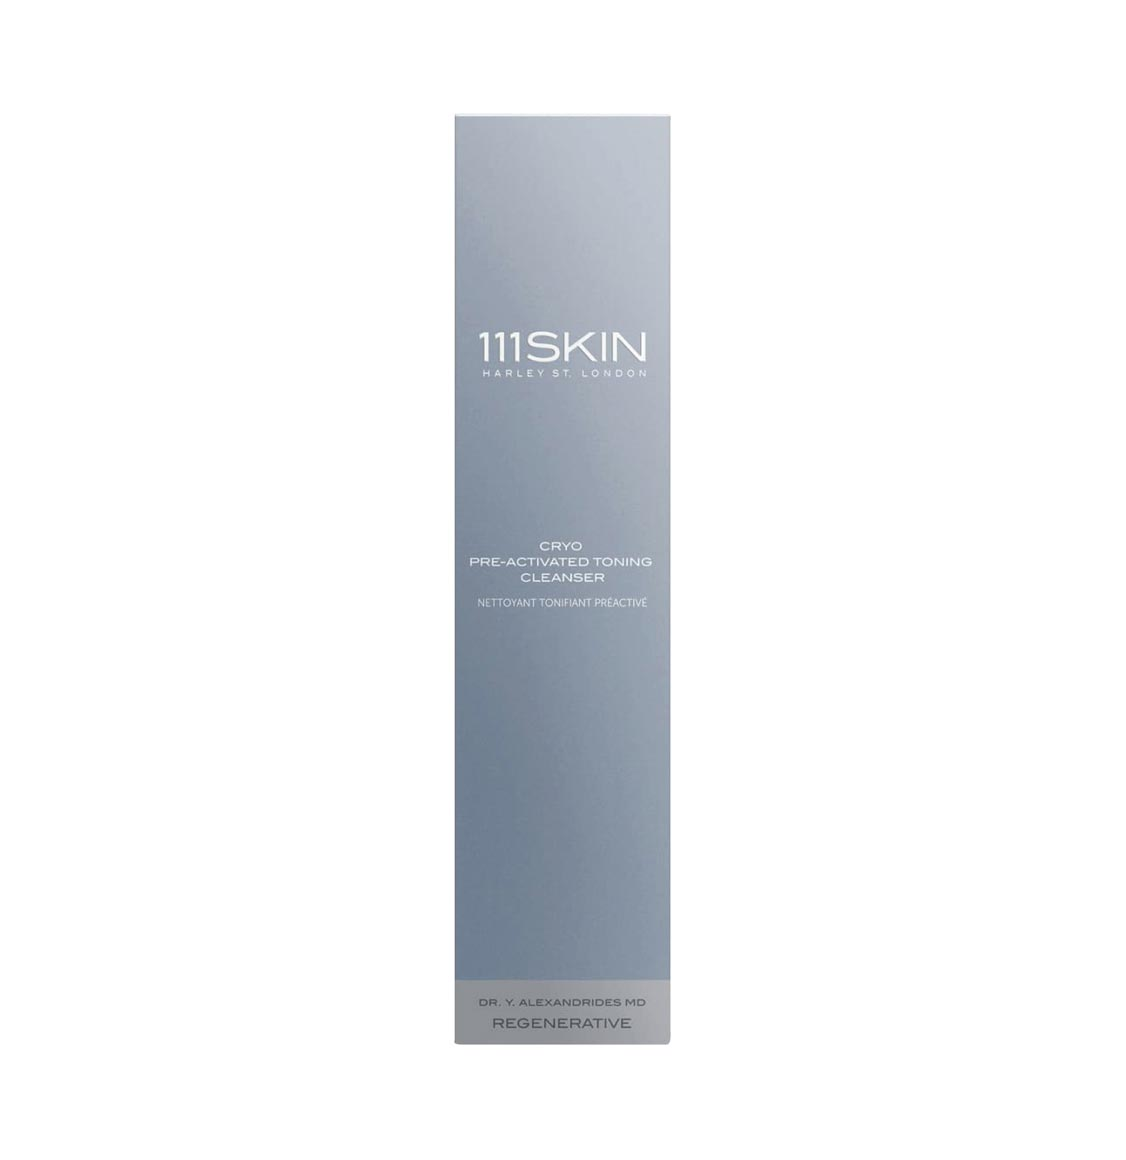 111Skin Cryo Pre-Activated Toning Cleanser 120ml